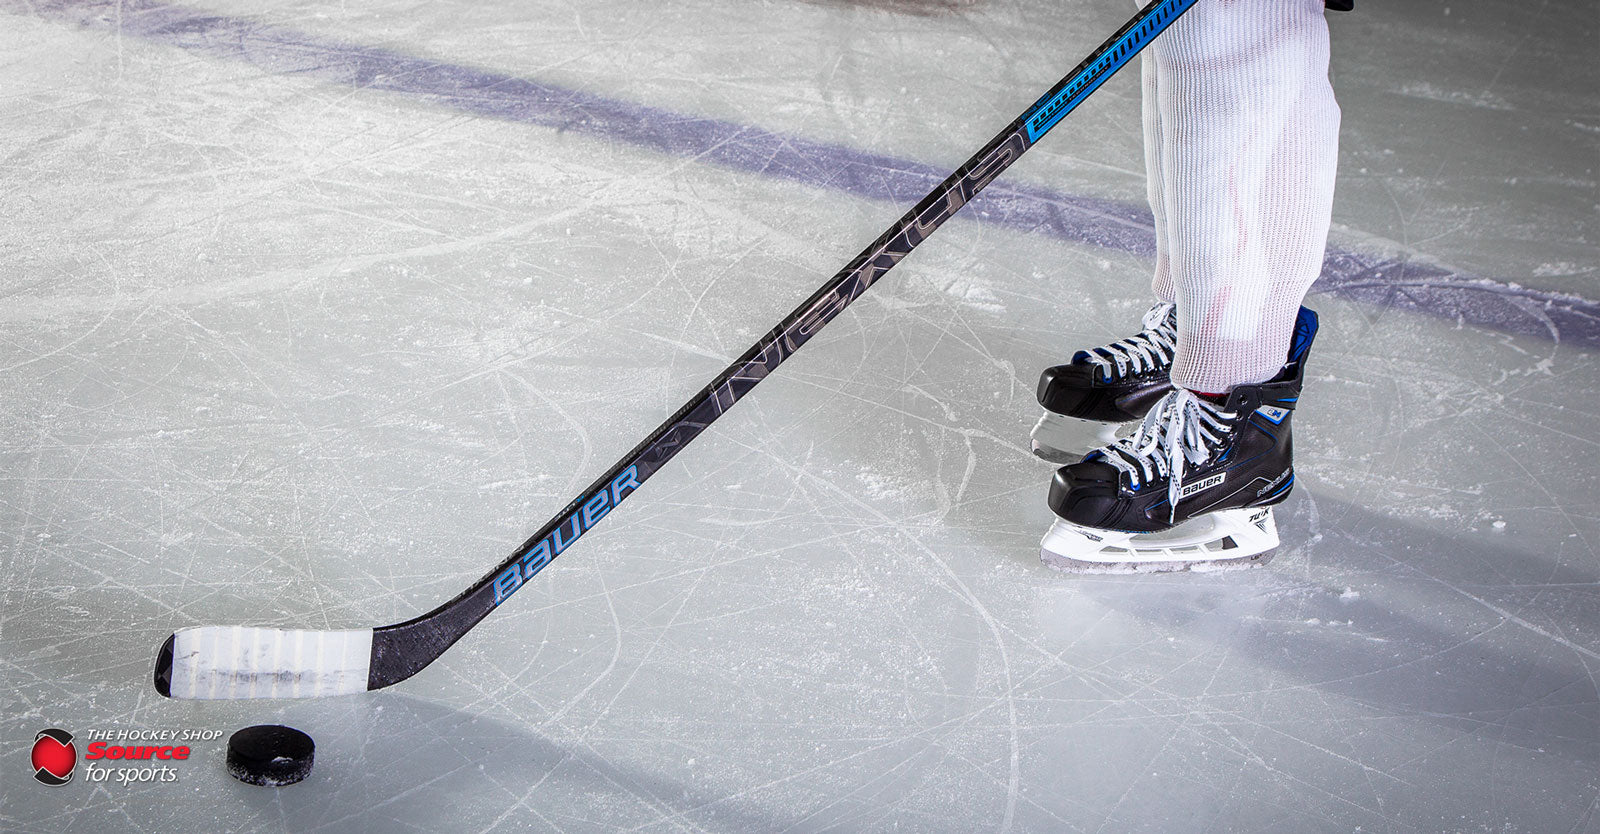 944297cafd3 2018 Bauer NEXUS 2N Pro Hockey Stick Review – The Hockey Shop Source ...